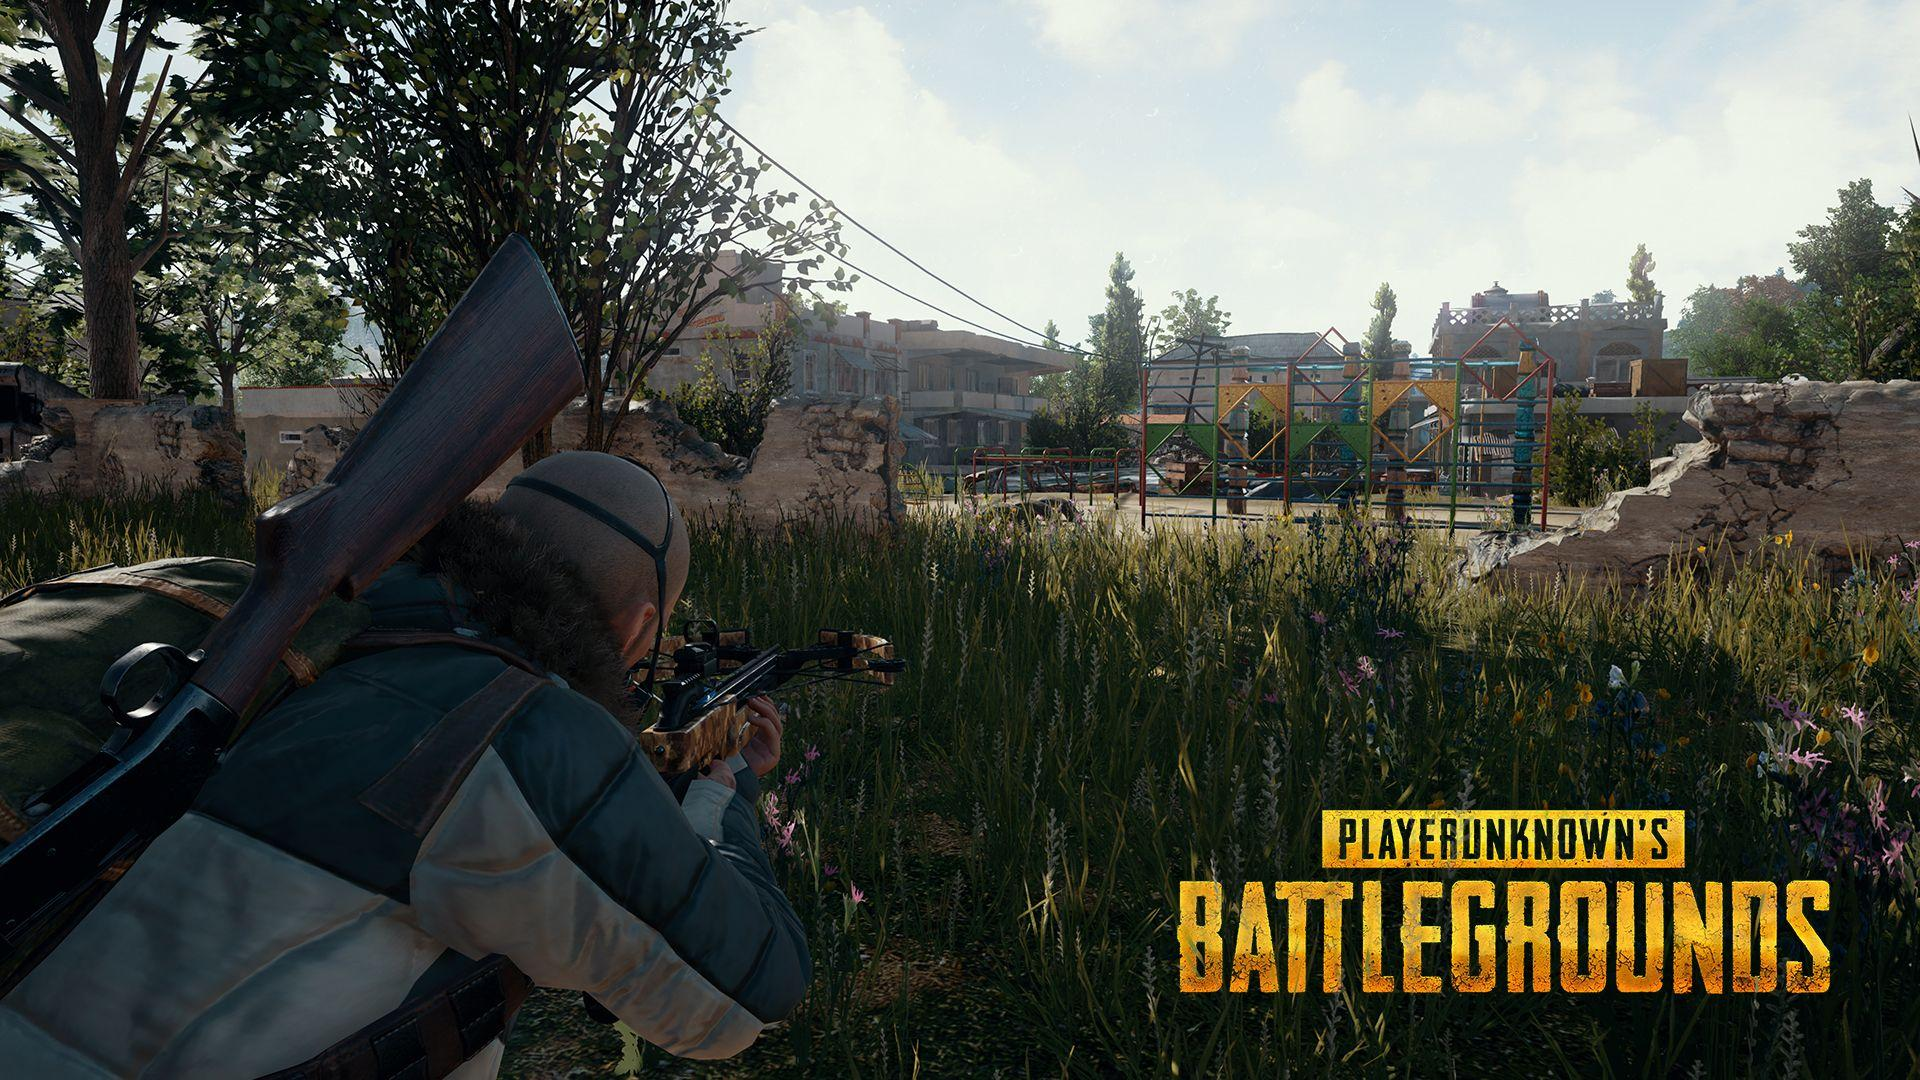 4k Playerunknowns Battlegrounds: PlayerUnknown's Battlegrounds Wallpapers